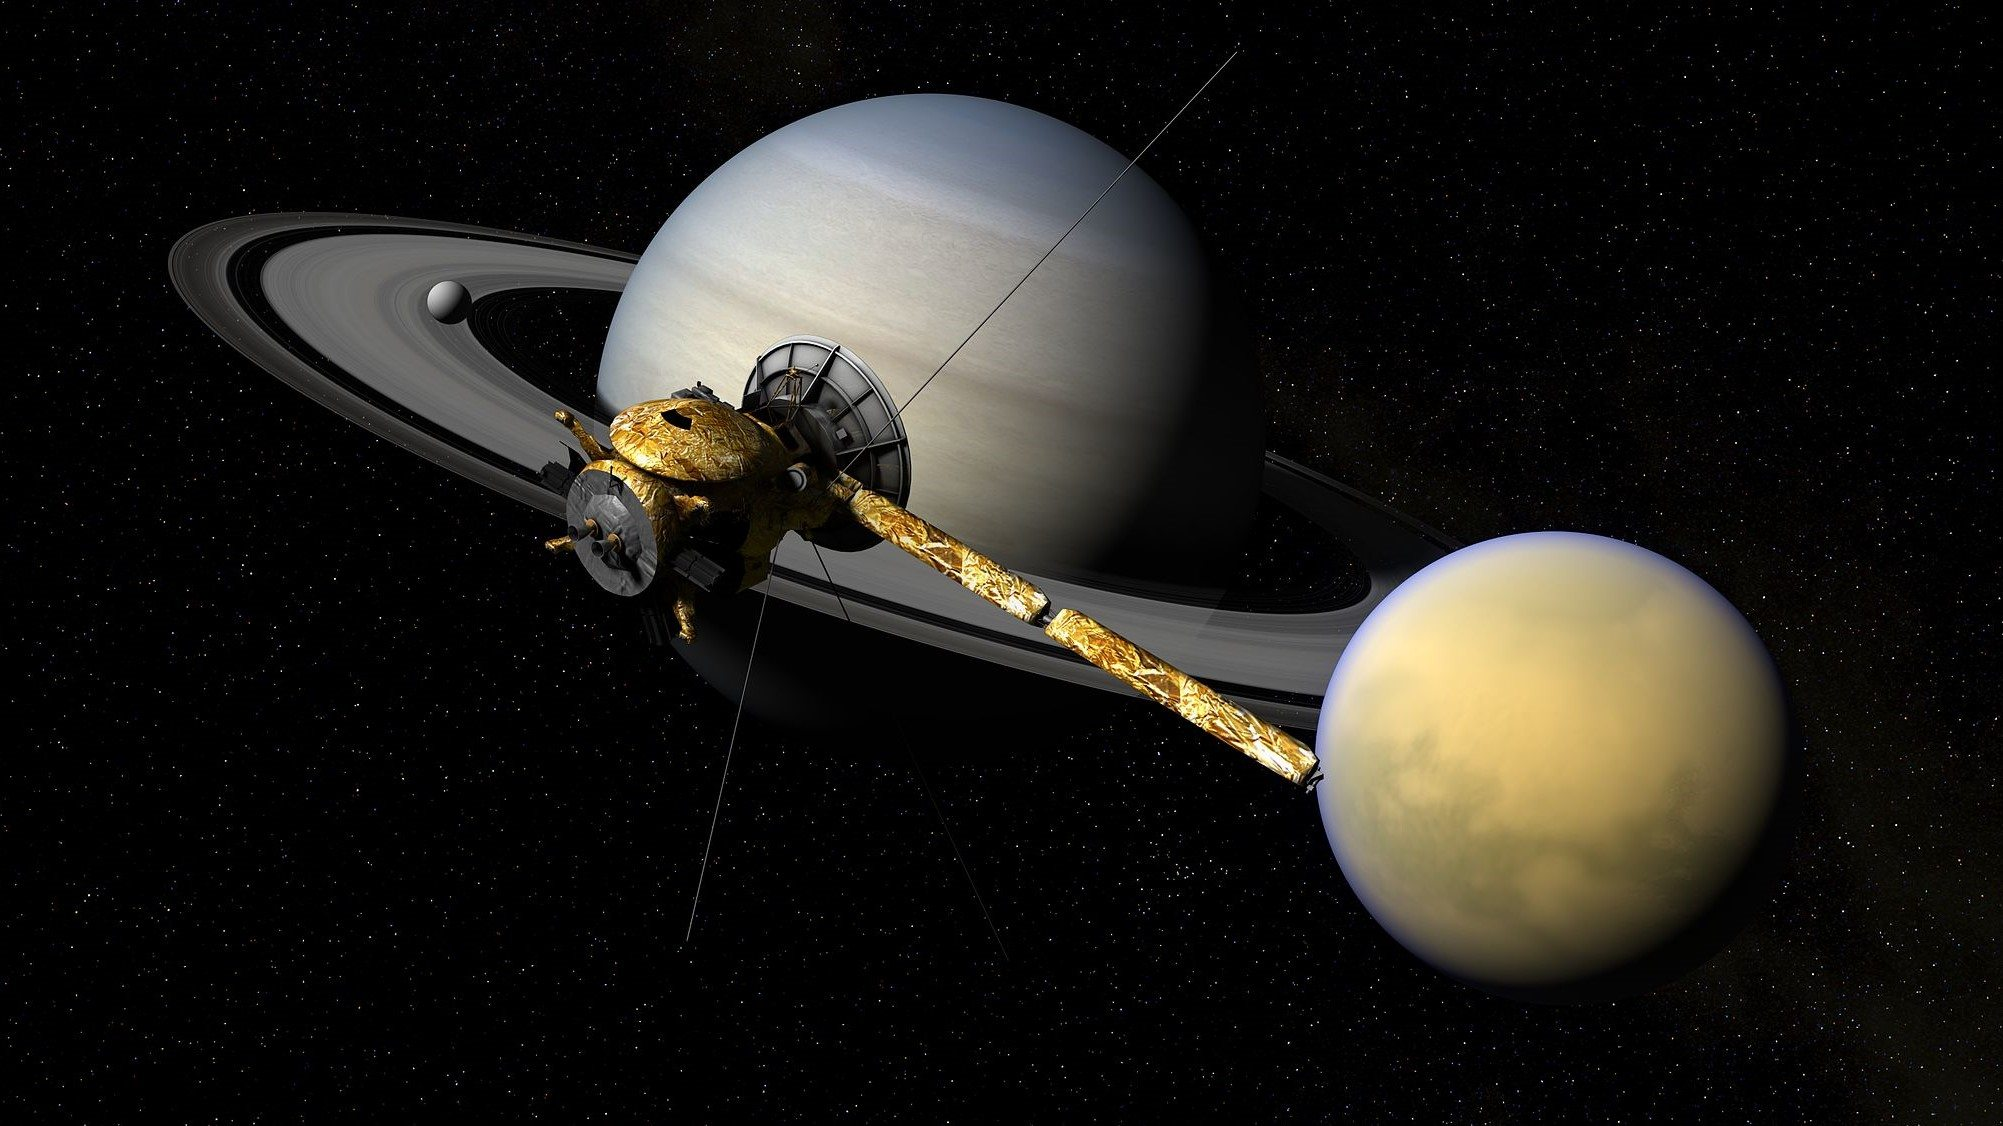 Image: Spacecraft Cassini floating in space in front of Saturn